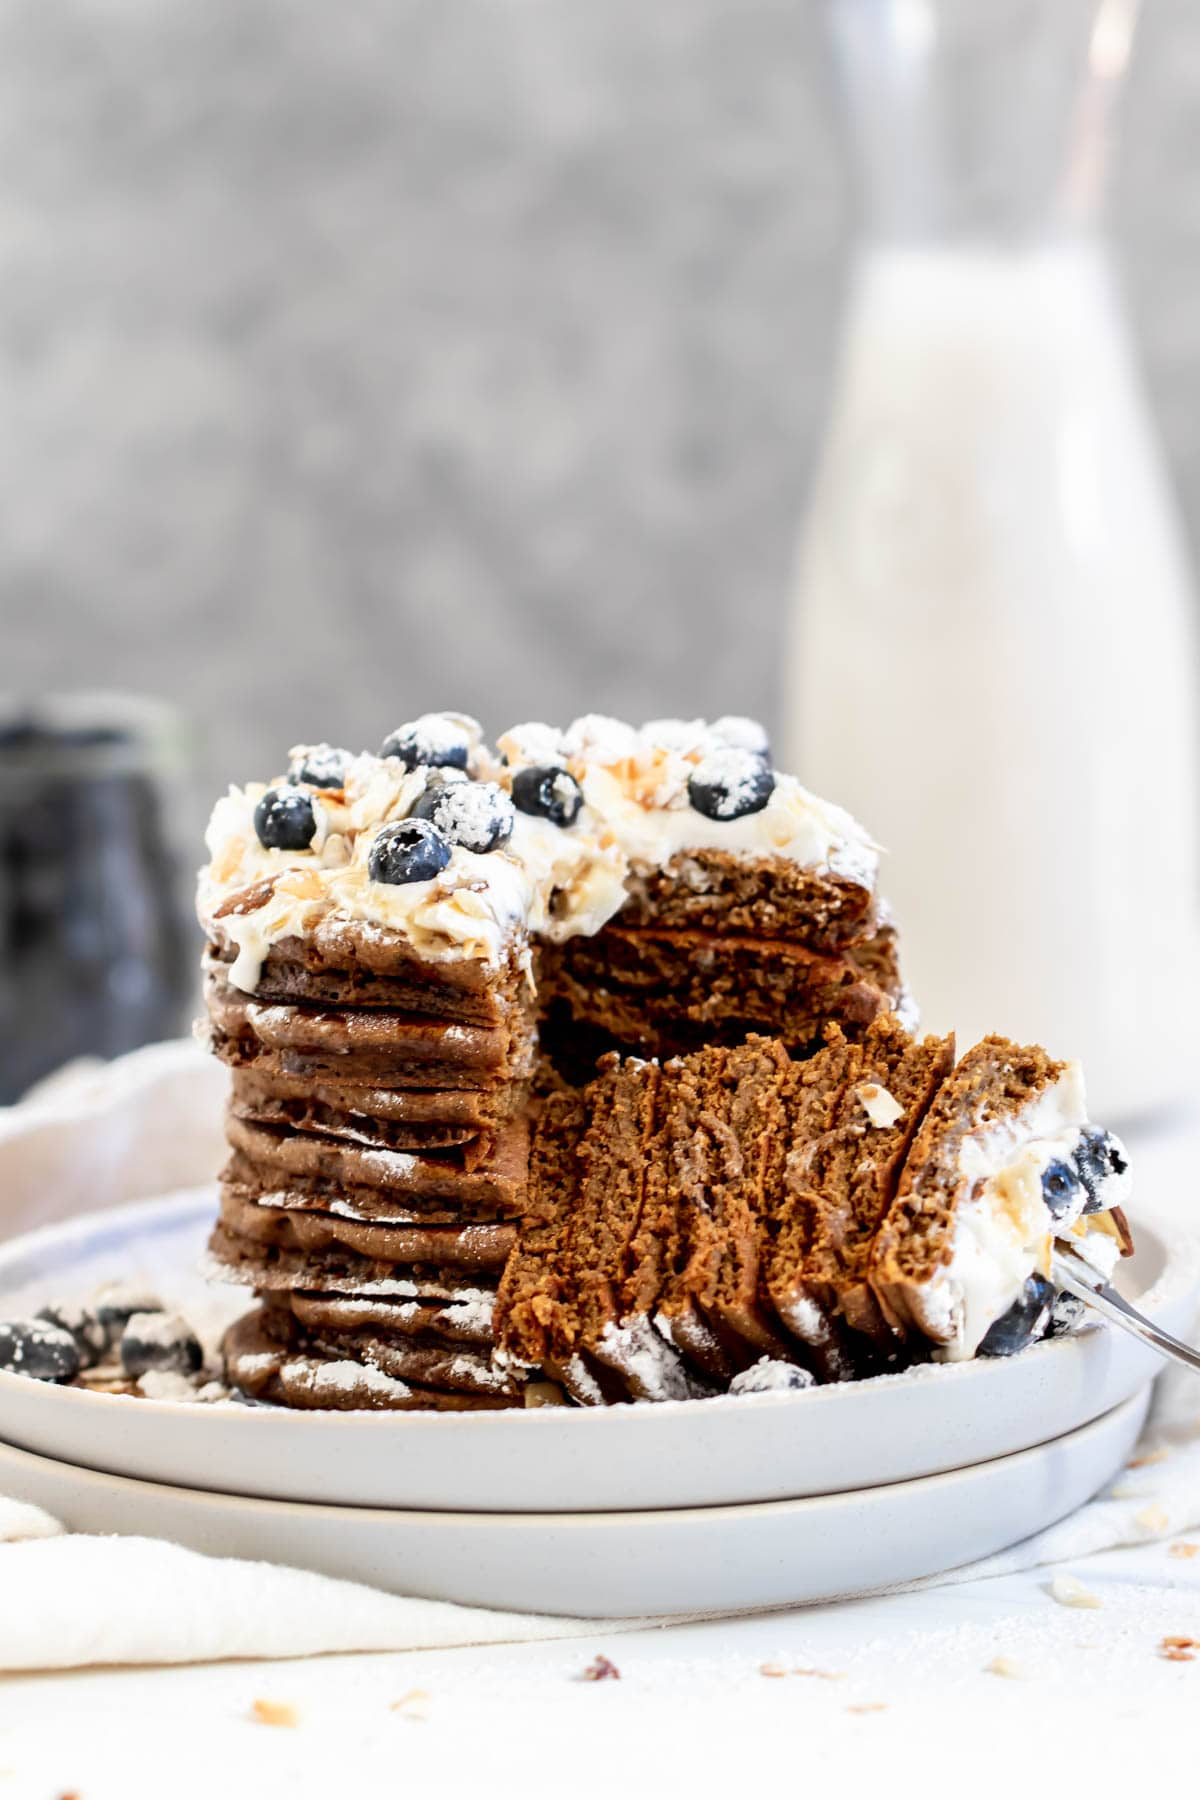 Stack of gingerbread pancakes with a fork on the side pulling out a bite.